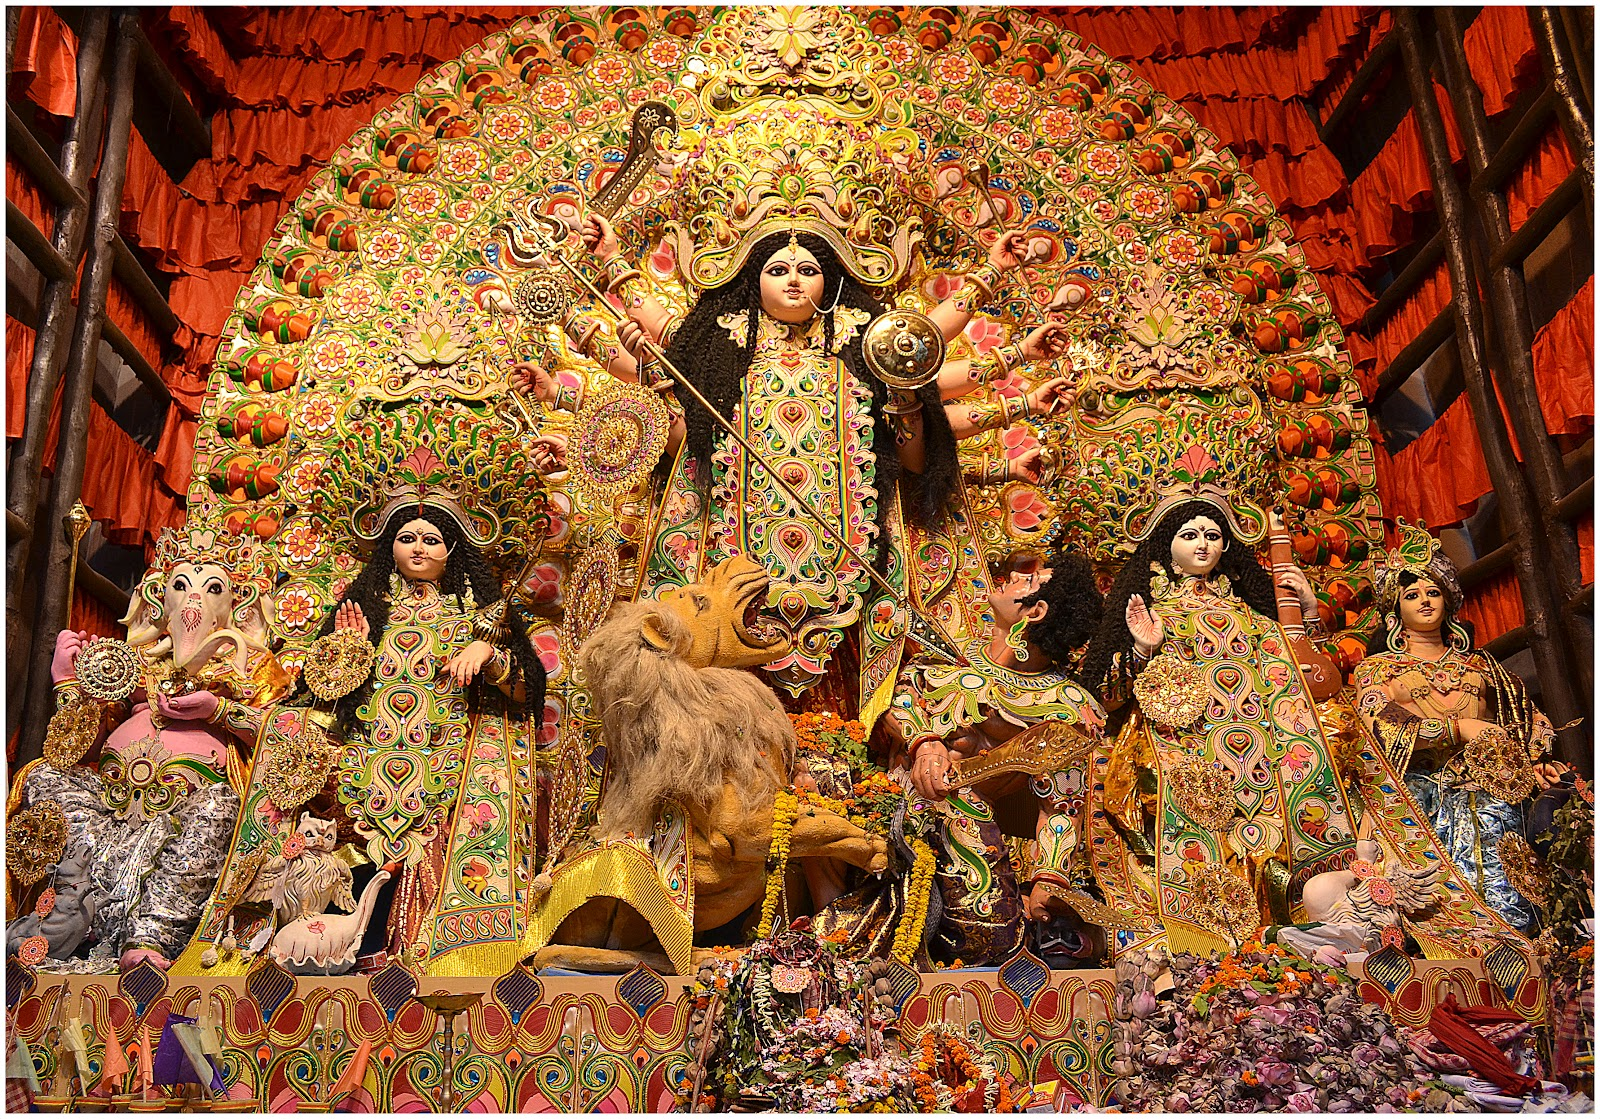 Durga Puja Wallpaper Unique Photo Of Durga Maa 1600x1119 Download Hd Wallpaper Wallpapertip